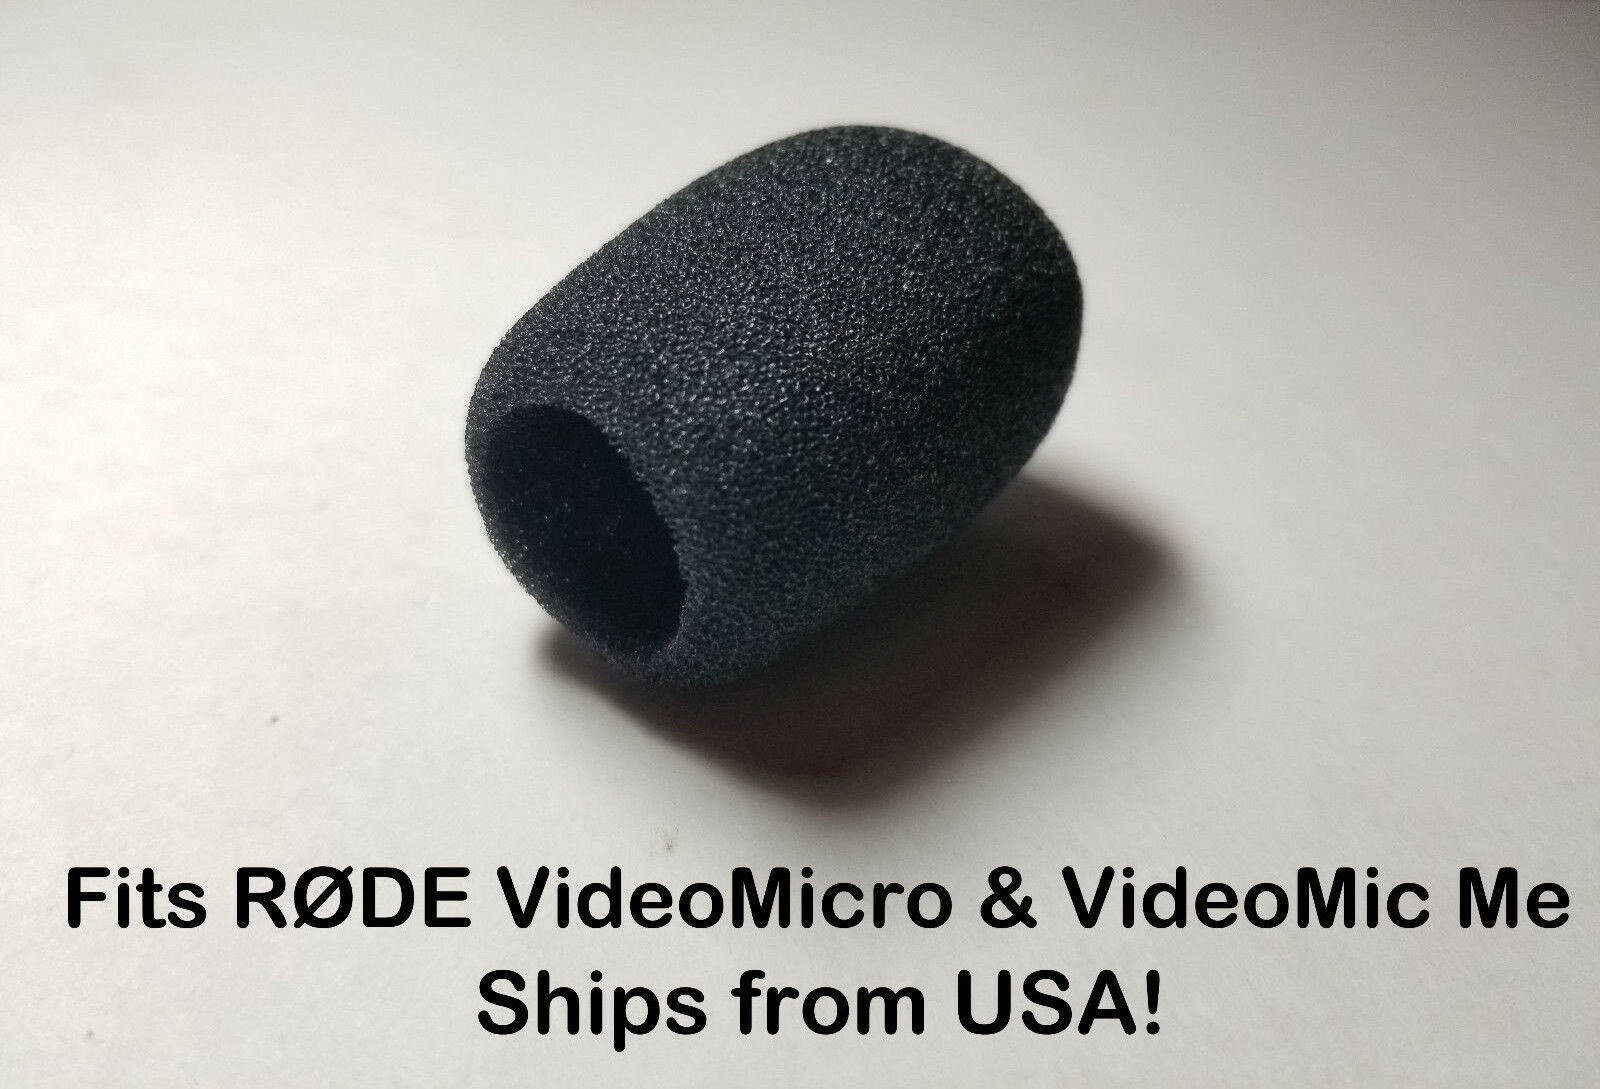 Foam Windscreen Muff Shield For Rode Videomicro Videomicme Usa Mic Video Micro Seller 1 Of 10free Shipping See More